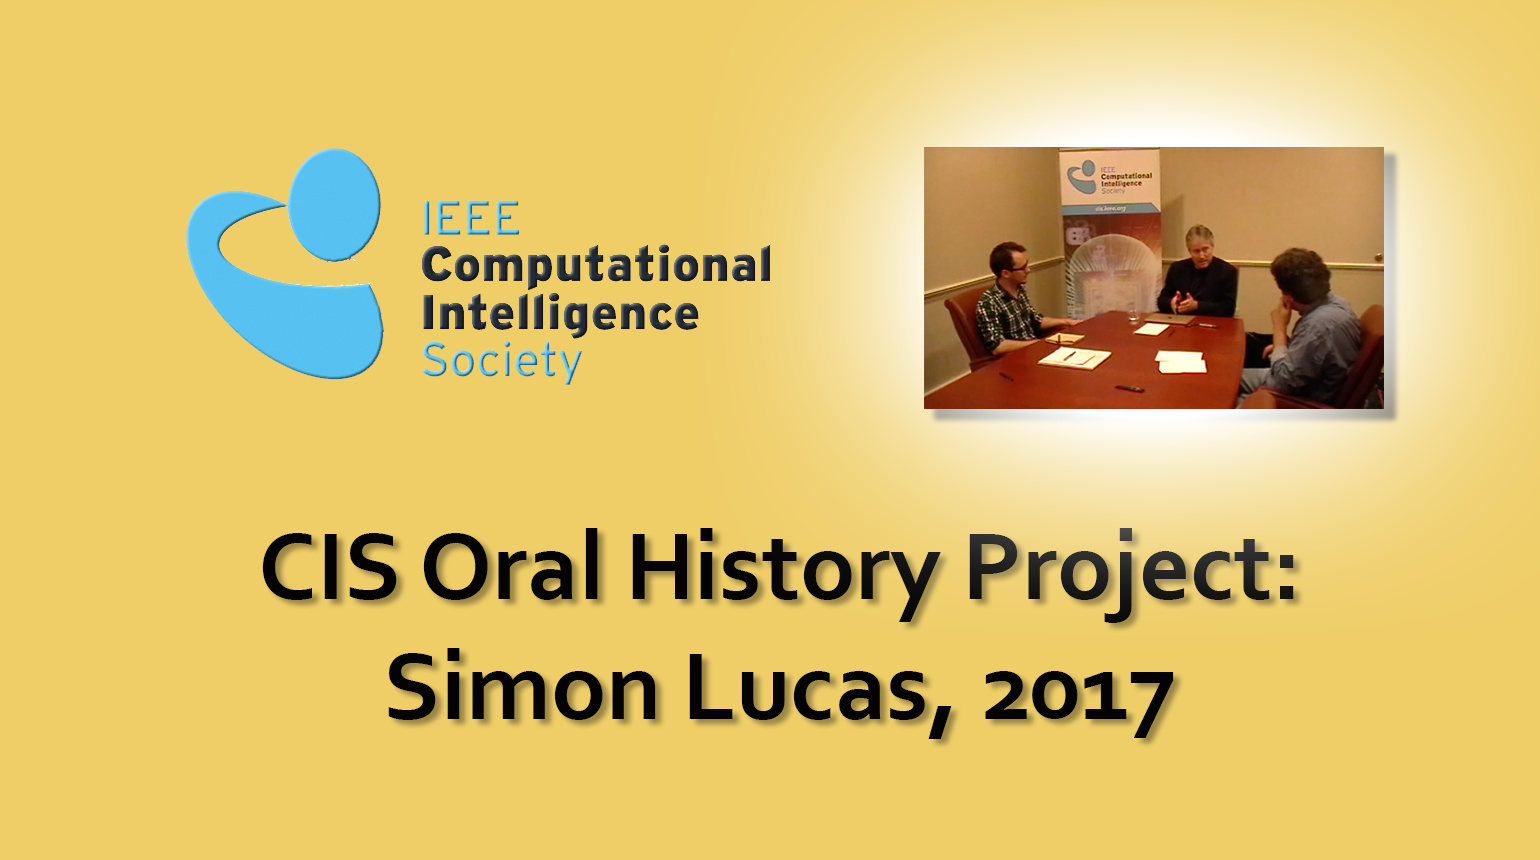 Interview with Simon Lucas, 2017: CIS Oral History Project